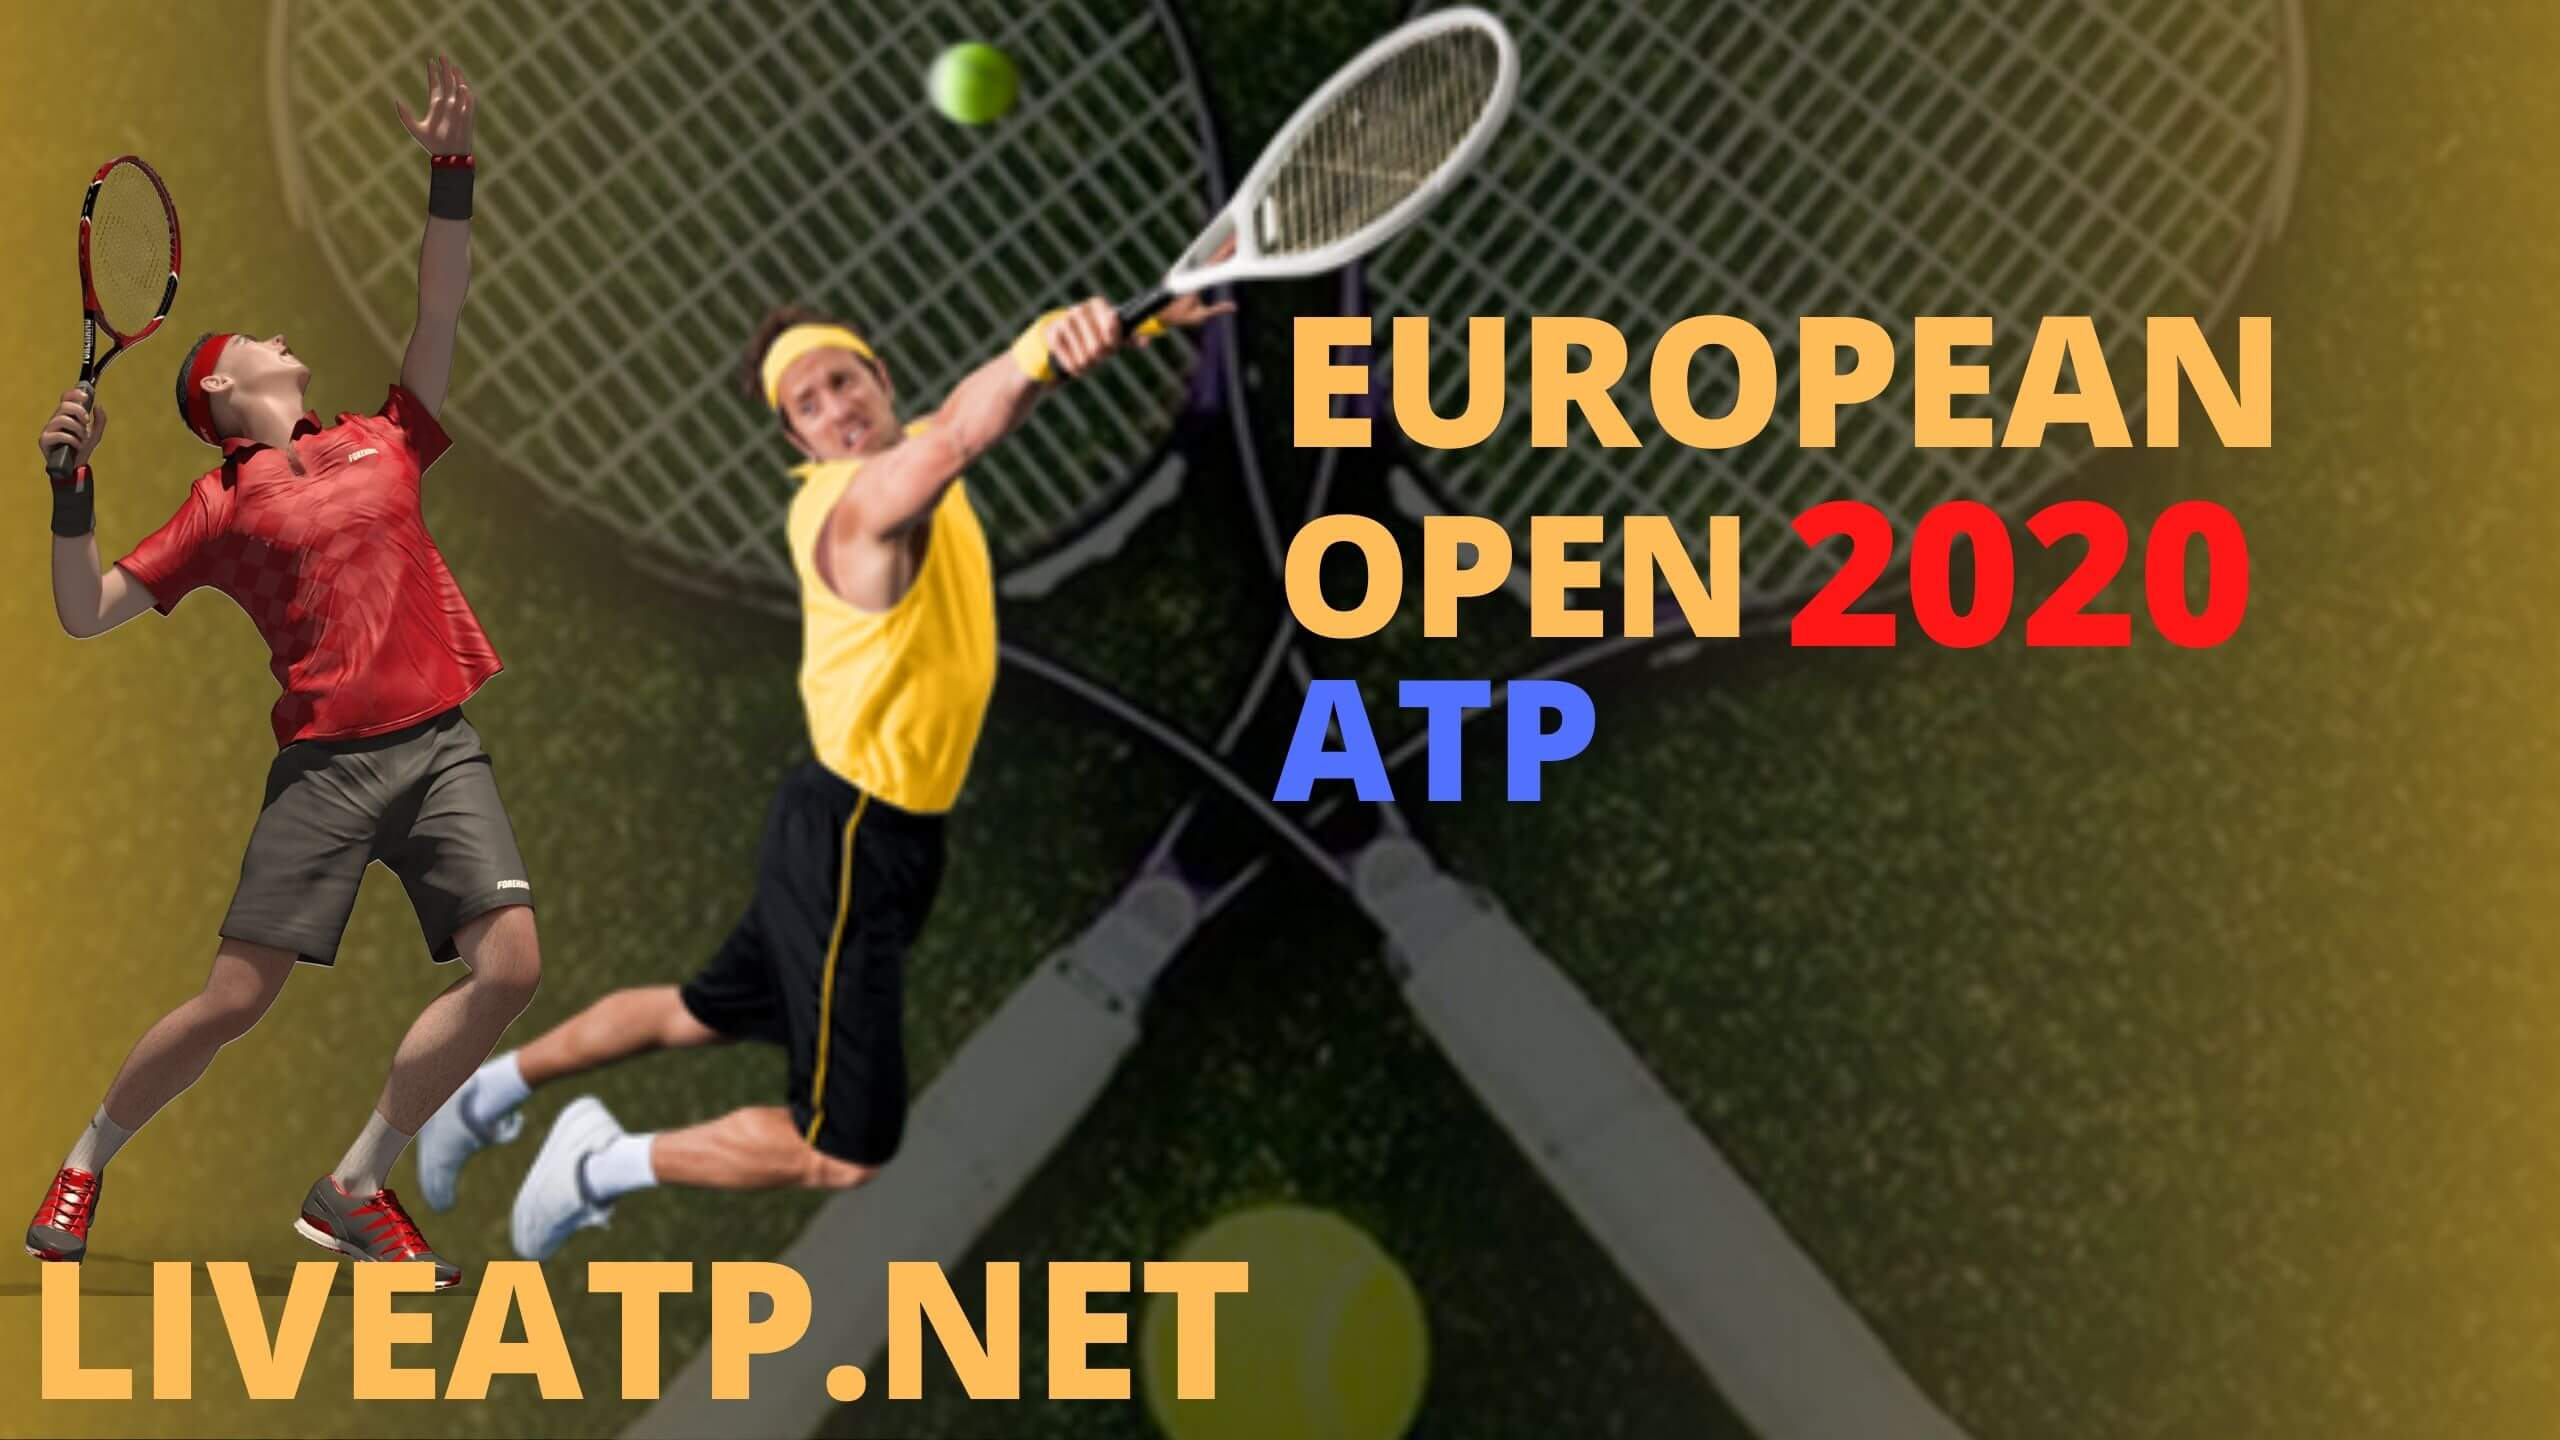 European Open Live Stream 2020 | Final